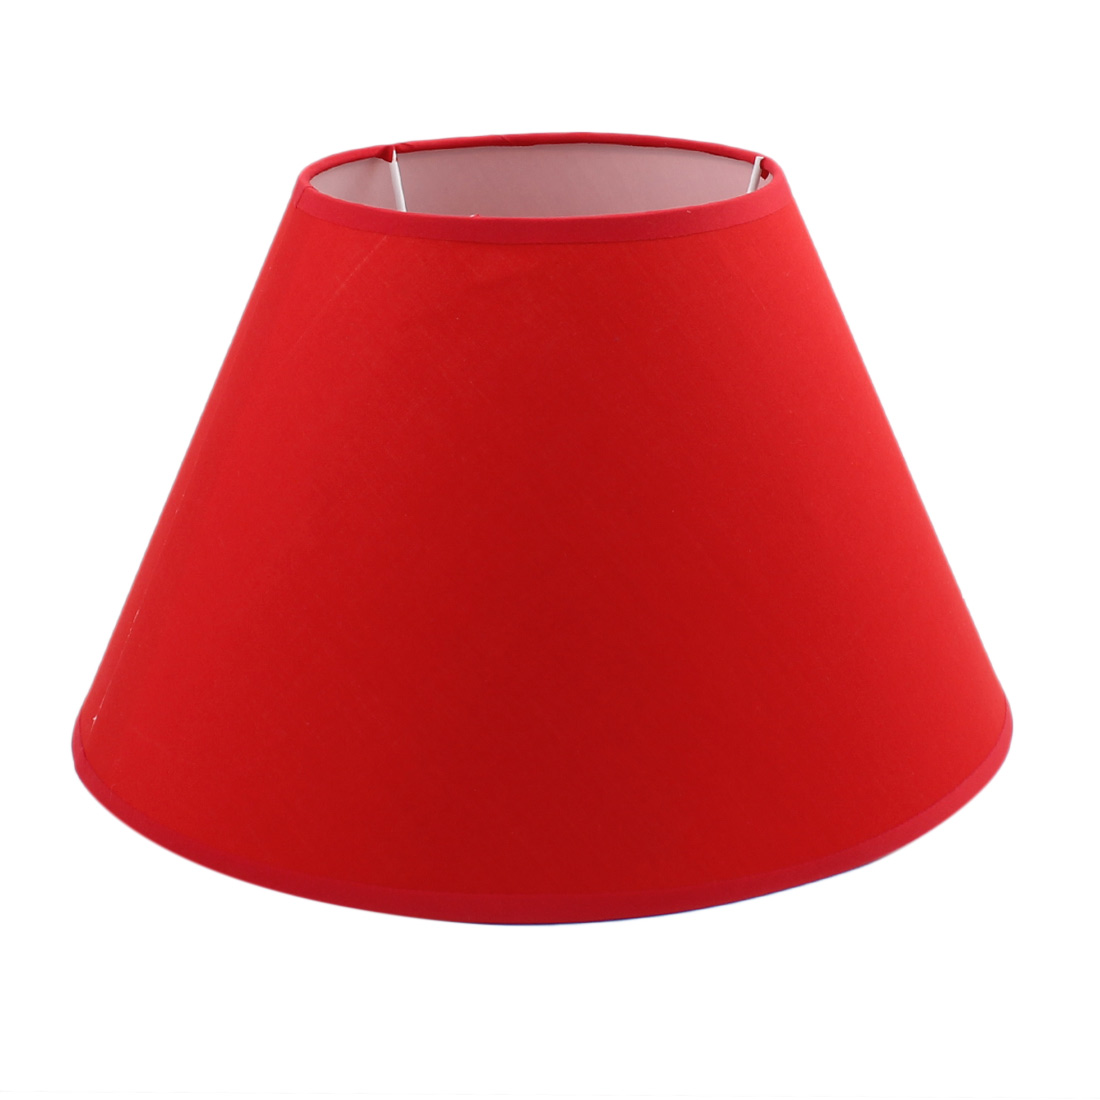 150mm x 300mm x 190mm Red Fabric Shell Lamp Shade for Student Reading Lamp